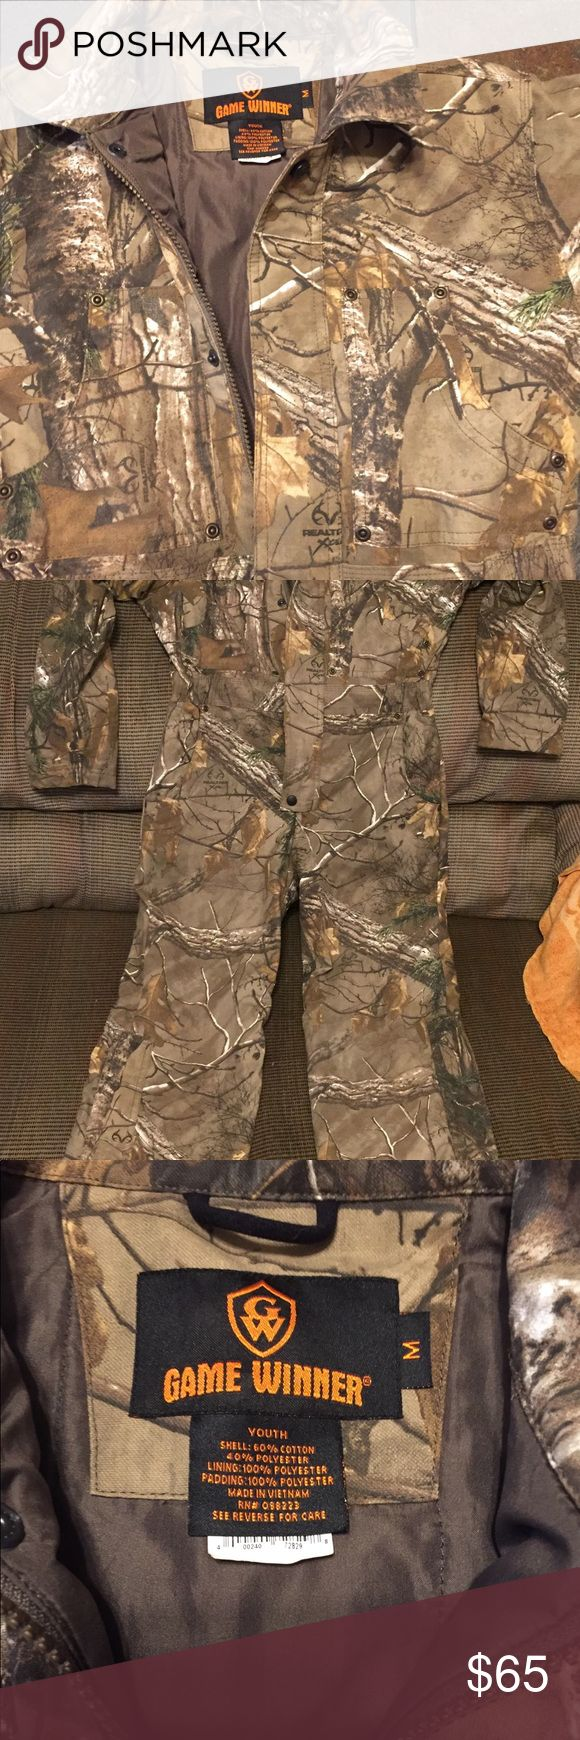 Game Winner Youth Coveralls Realtree Print Insulated Youth Coveralls! Size youth Medium. Worn for only 2 hours! As good as new! The waist is 15 inches across and the inseam is 24 inches! Game Winner Jackets & Coats Utility Jackets